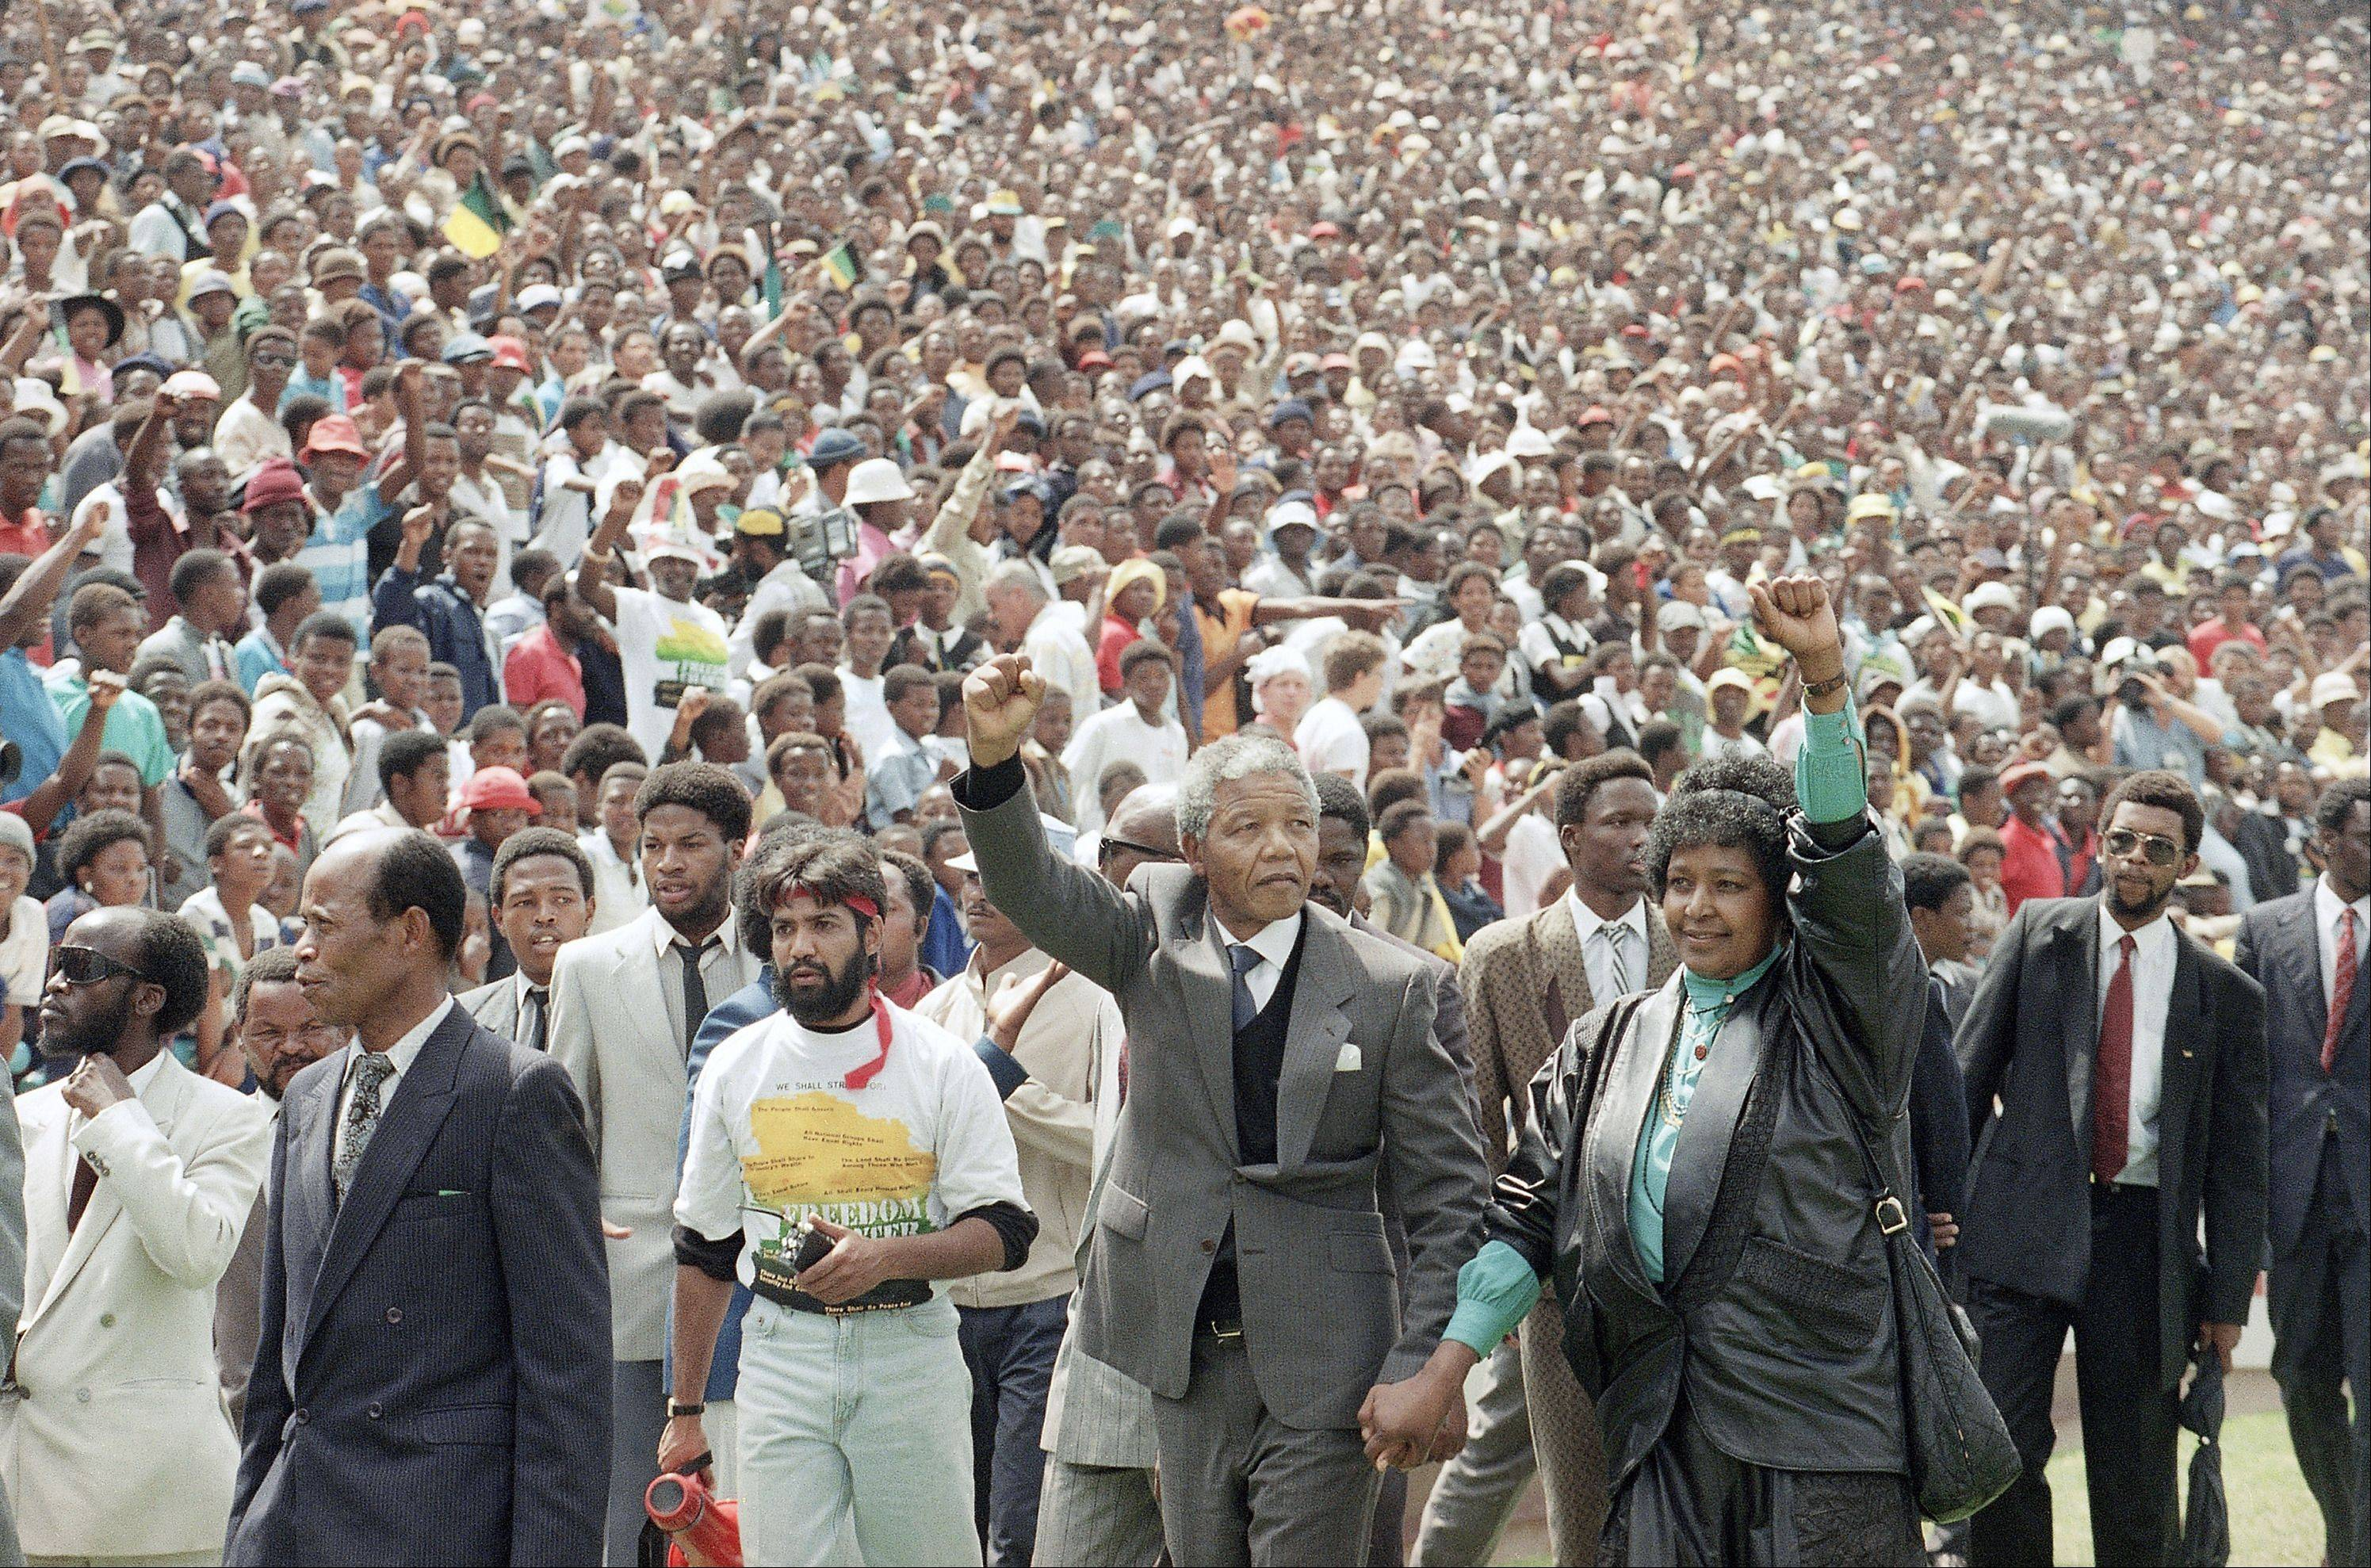 Nelson Mandela and Winnie Mandela give back power salutes as they enter Soweto's Soccer City stadium, South Africa Tuesday, Feb. 13, 1990. 120,000 thousand people packed the venue to hear his speech.